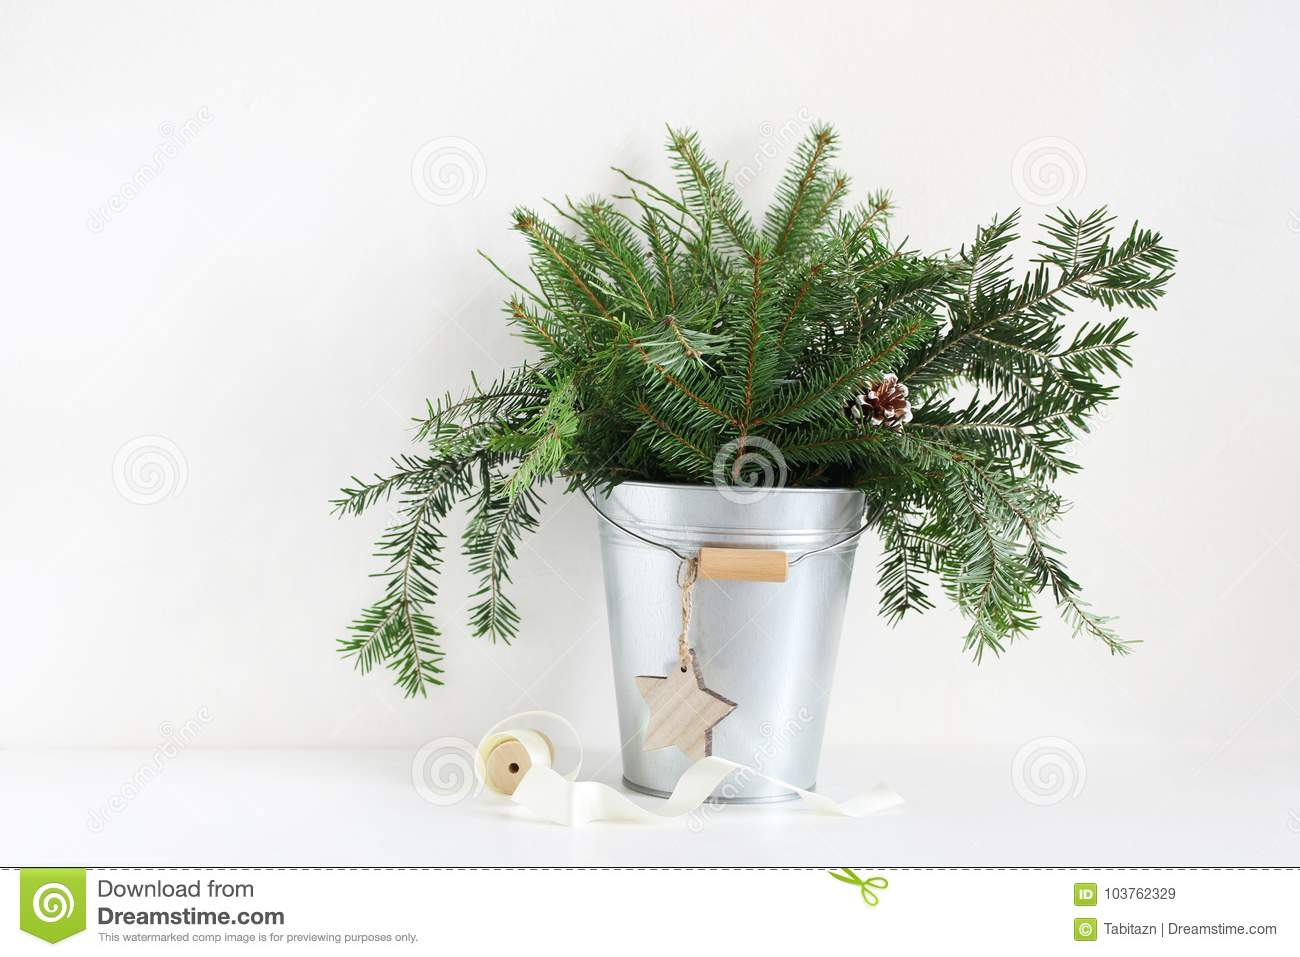 Download christmas tree in a galvanized bucket webdesigninusa